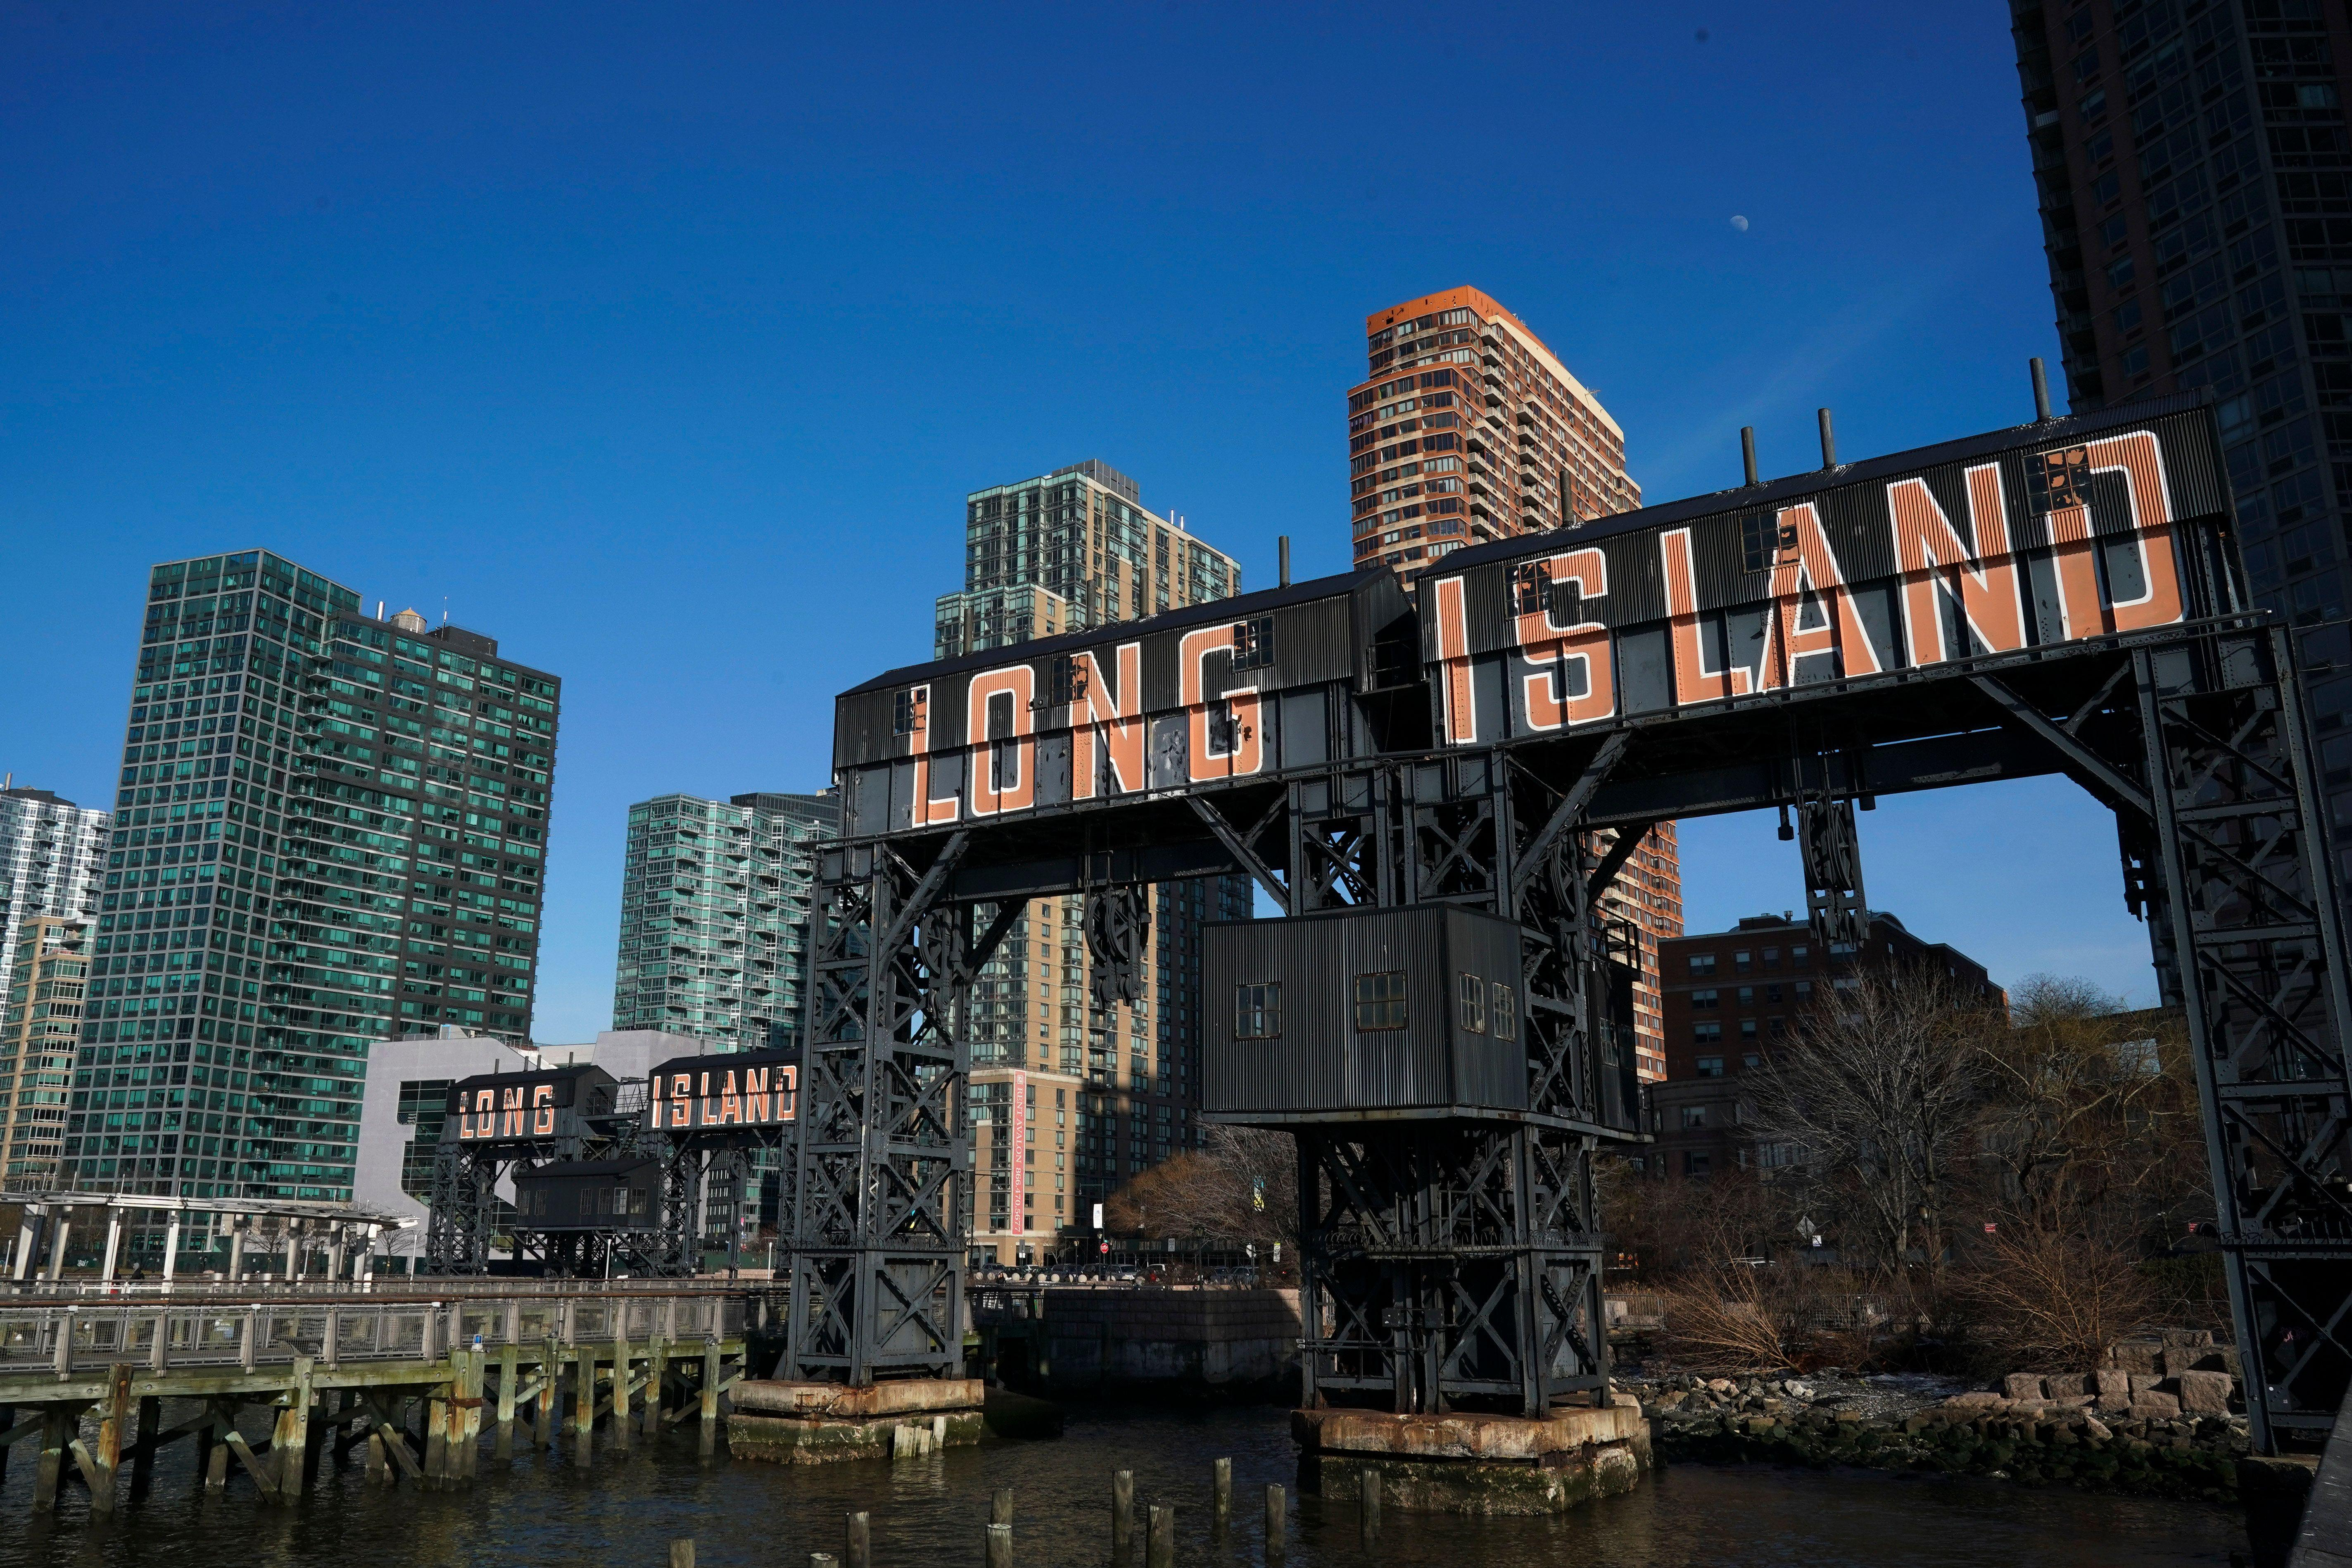 Amazon's decision to ditch HQ2 is a black eye for NYC's tech scene